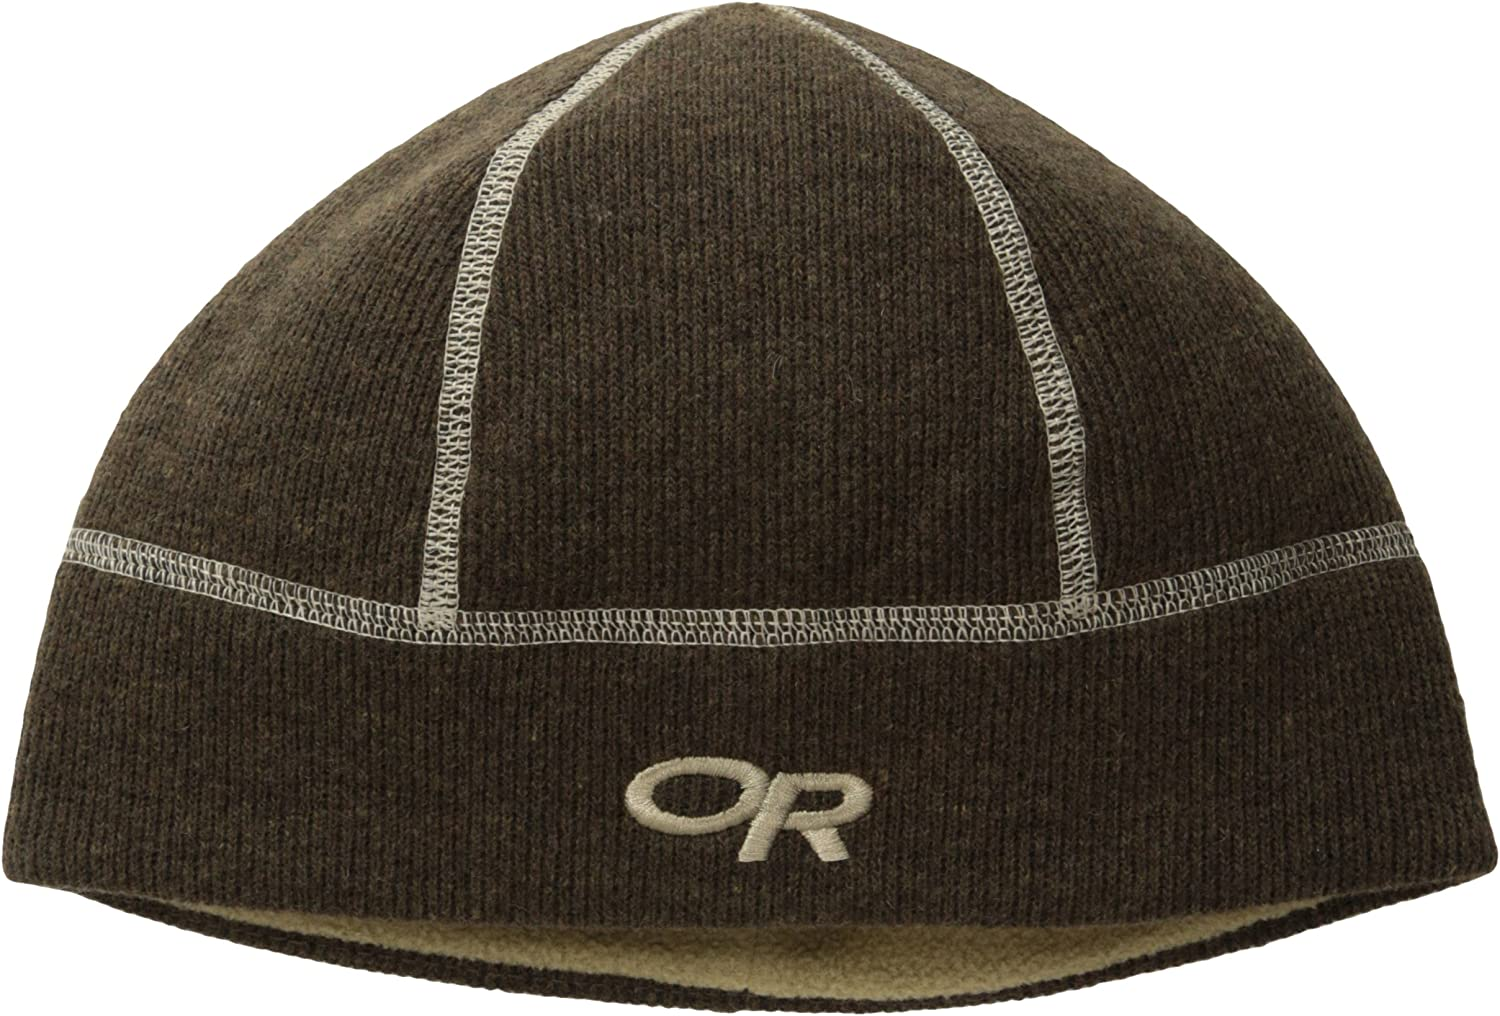 Outdoor Research Flurry Beanie, Earth, Small Medium